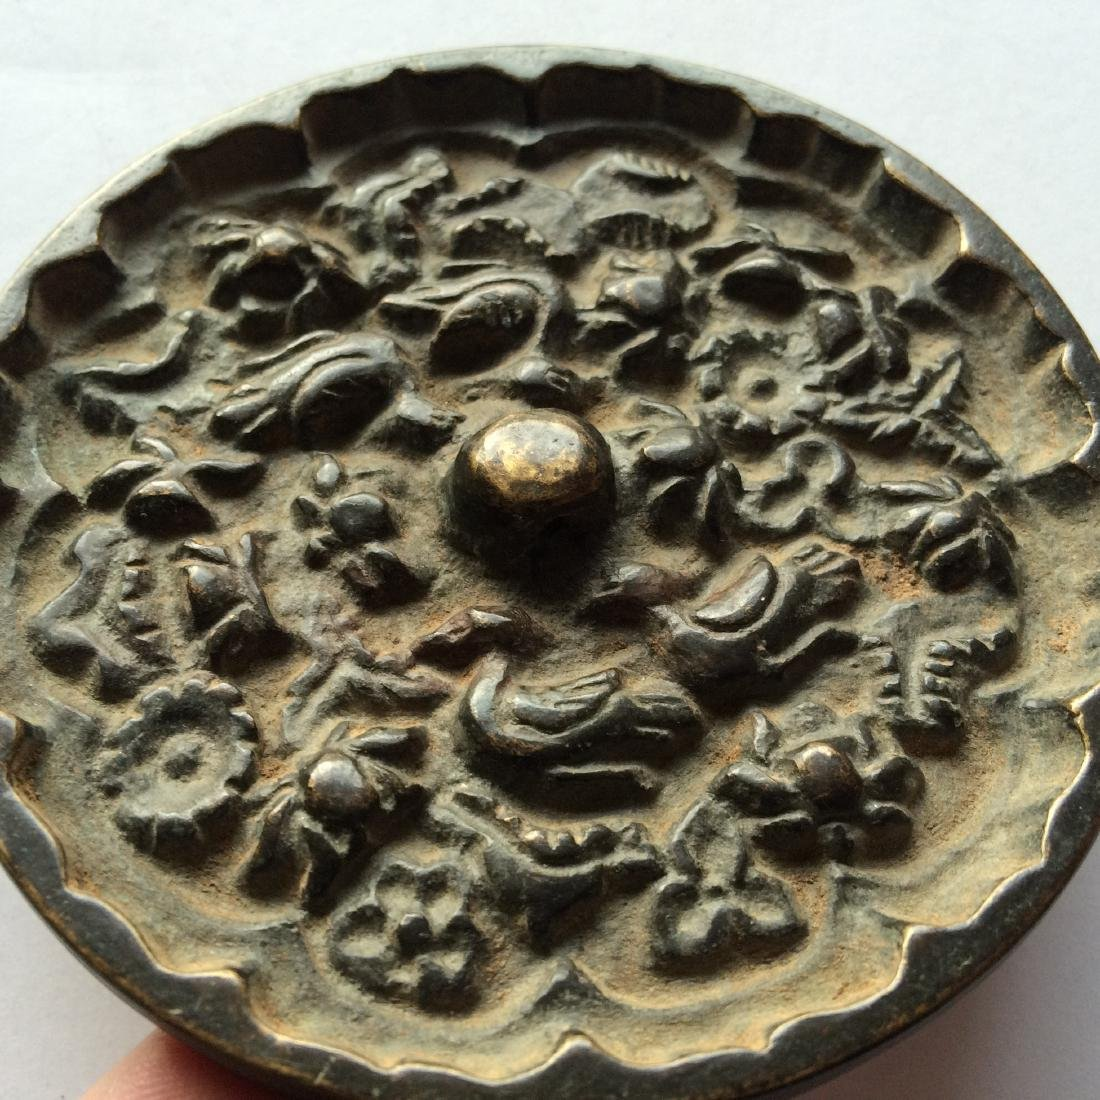 Antique Chinese Bronze Mirror Engraved with Birds - 3